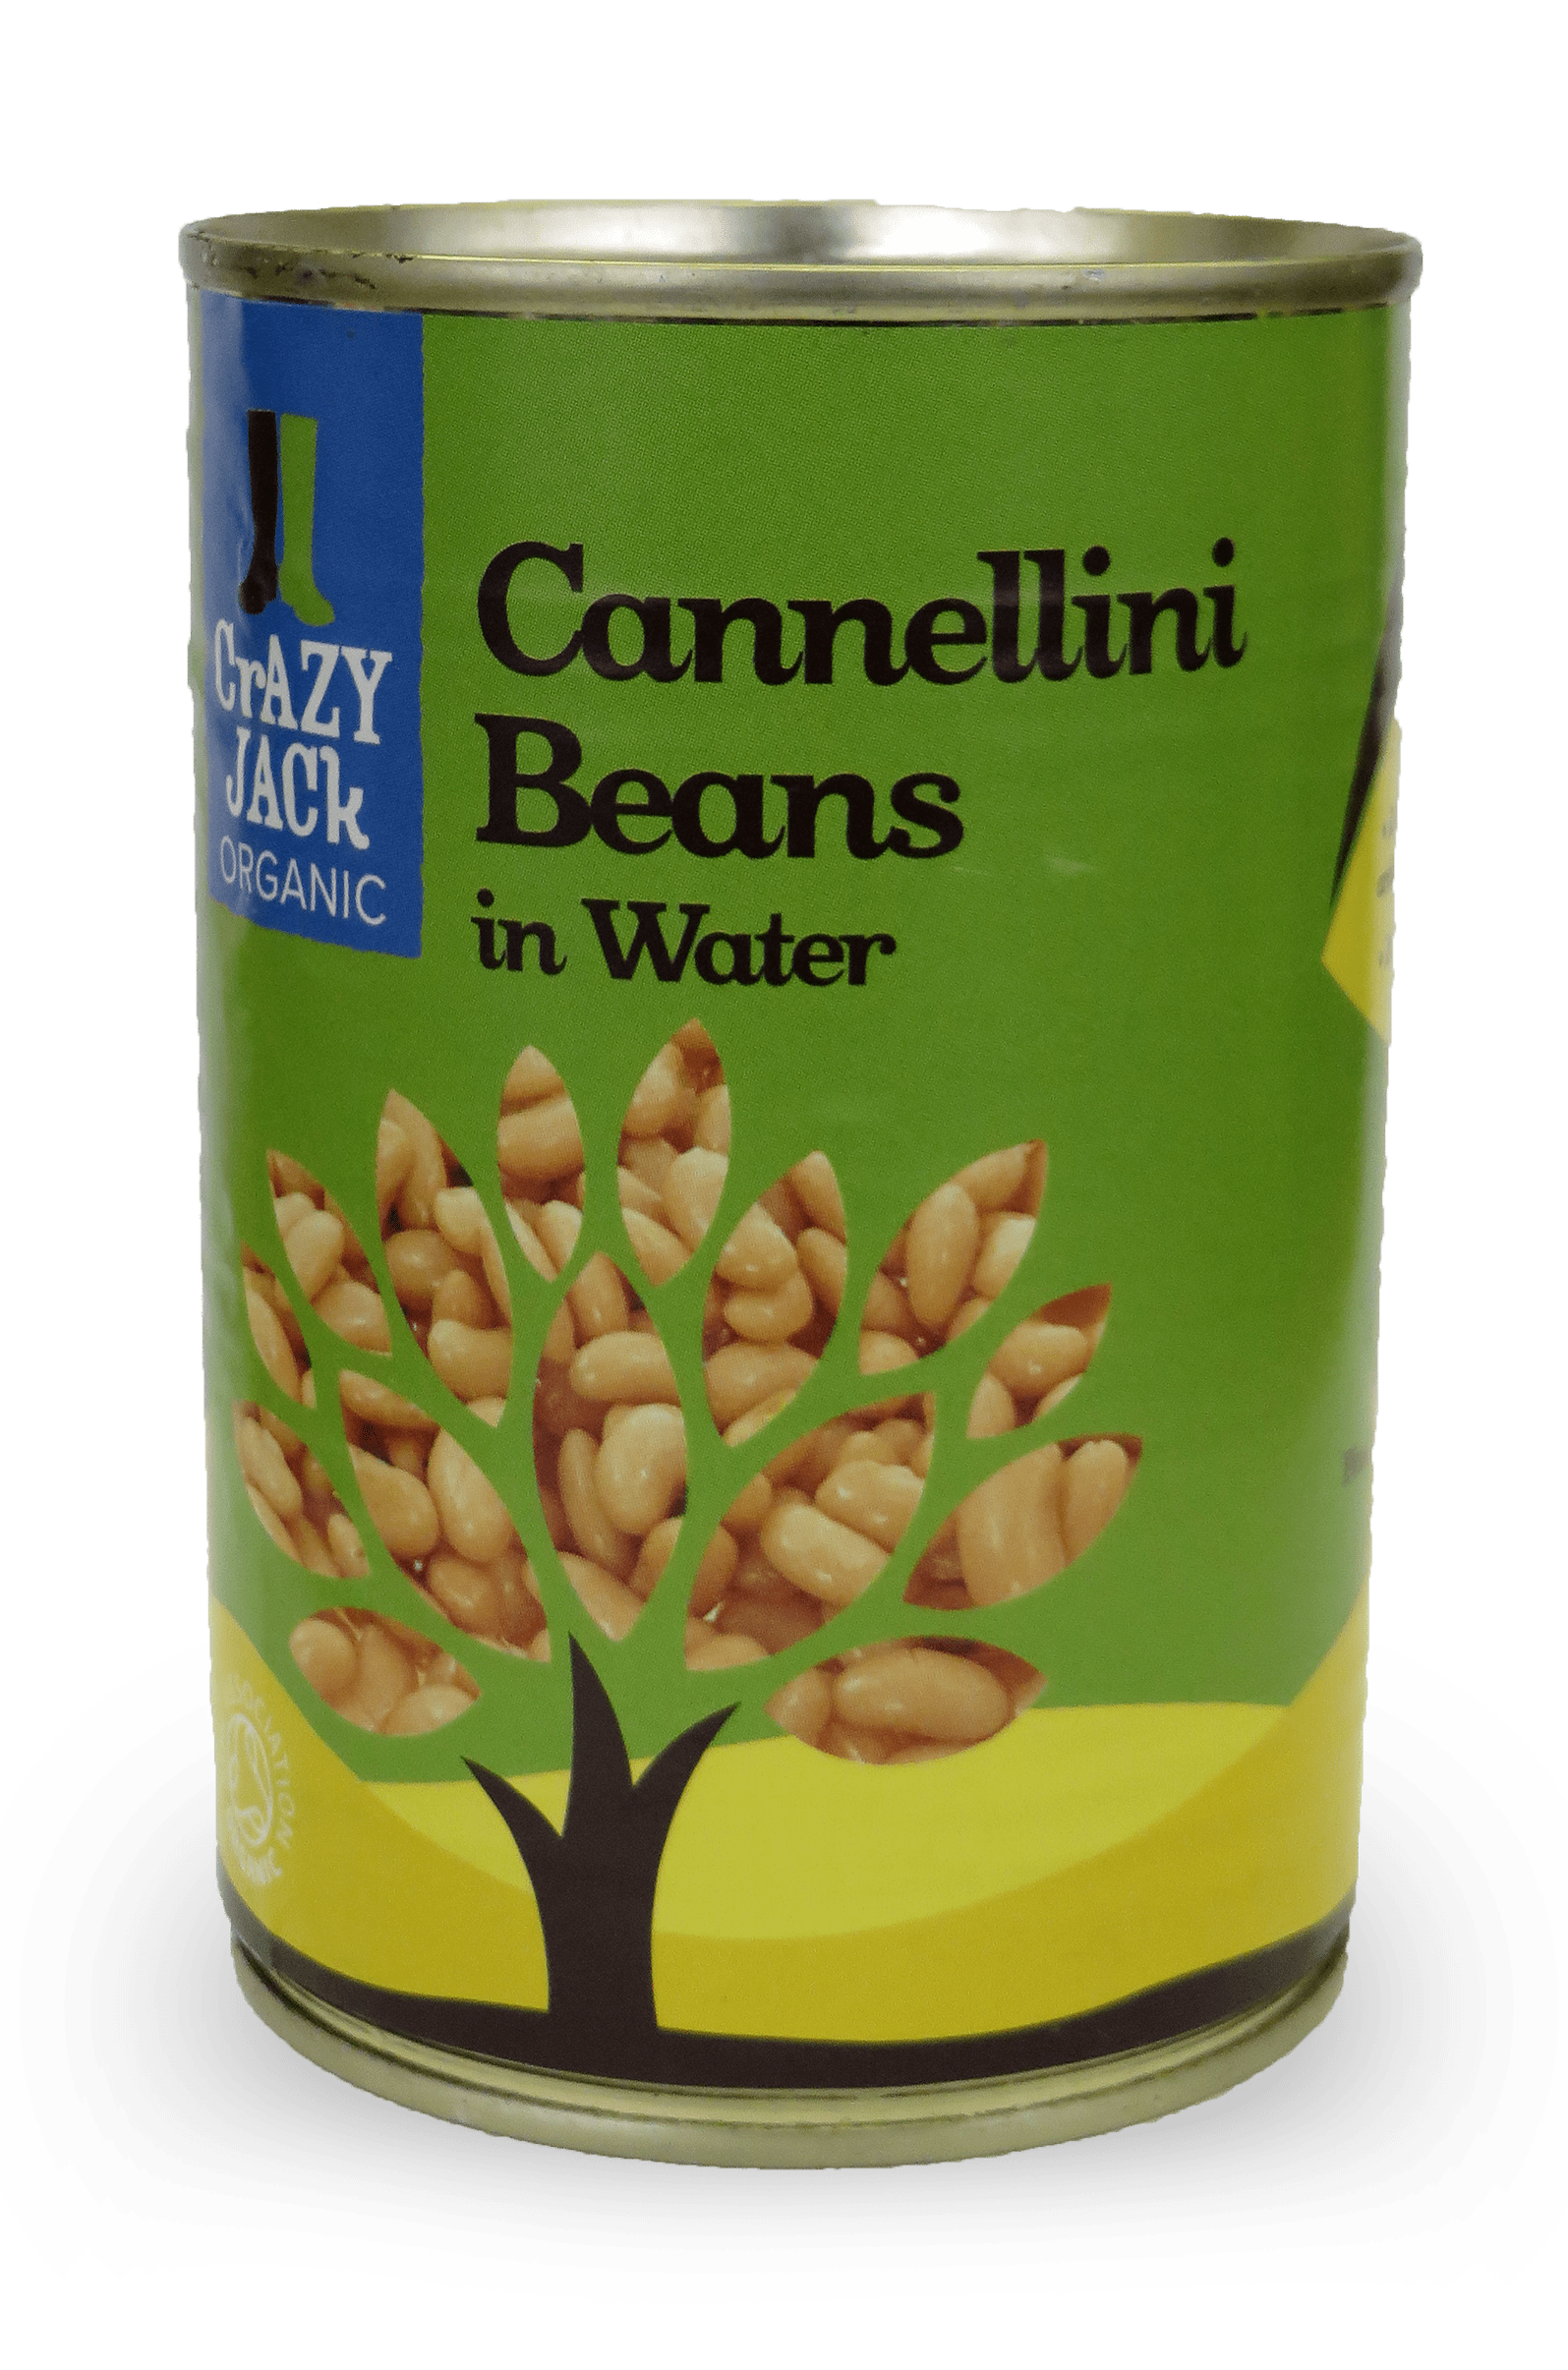 A tin of organic cannellini beans in water